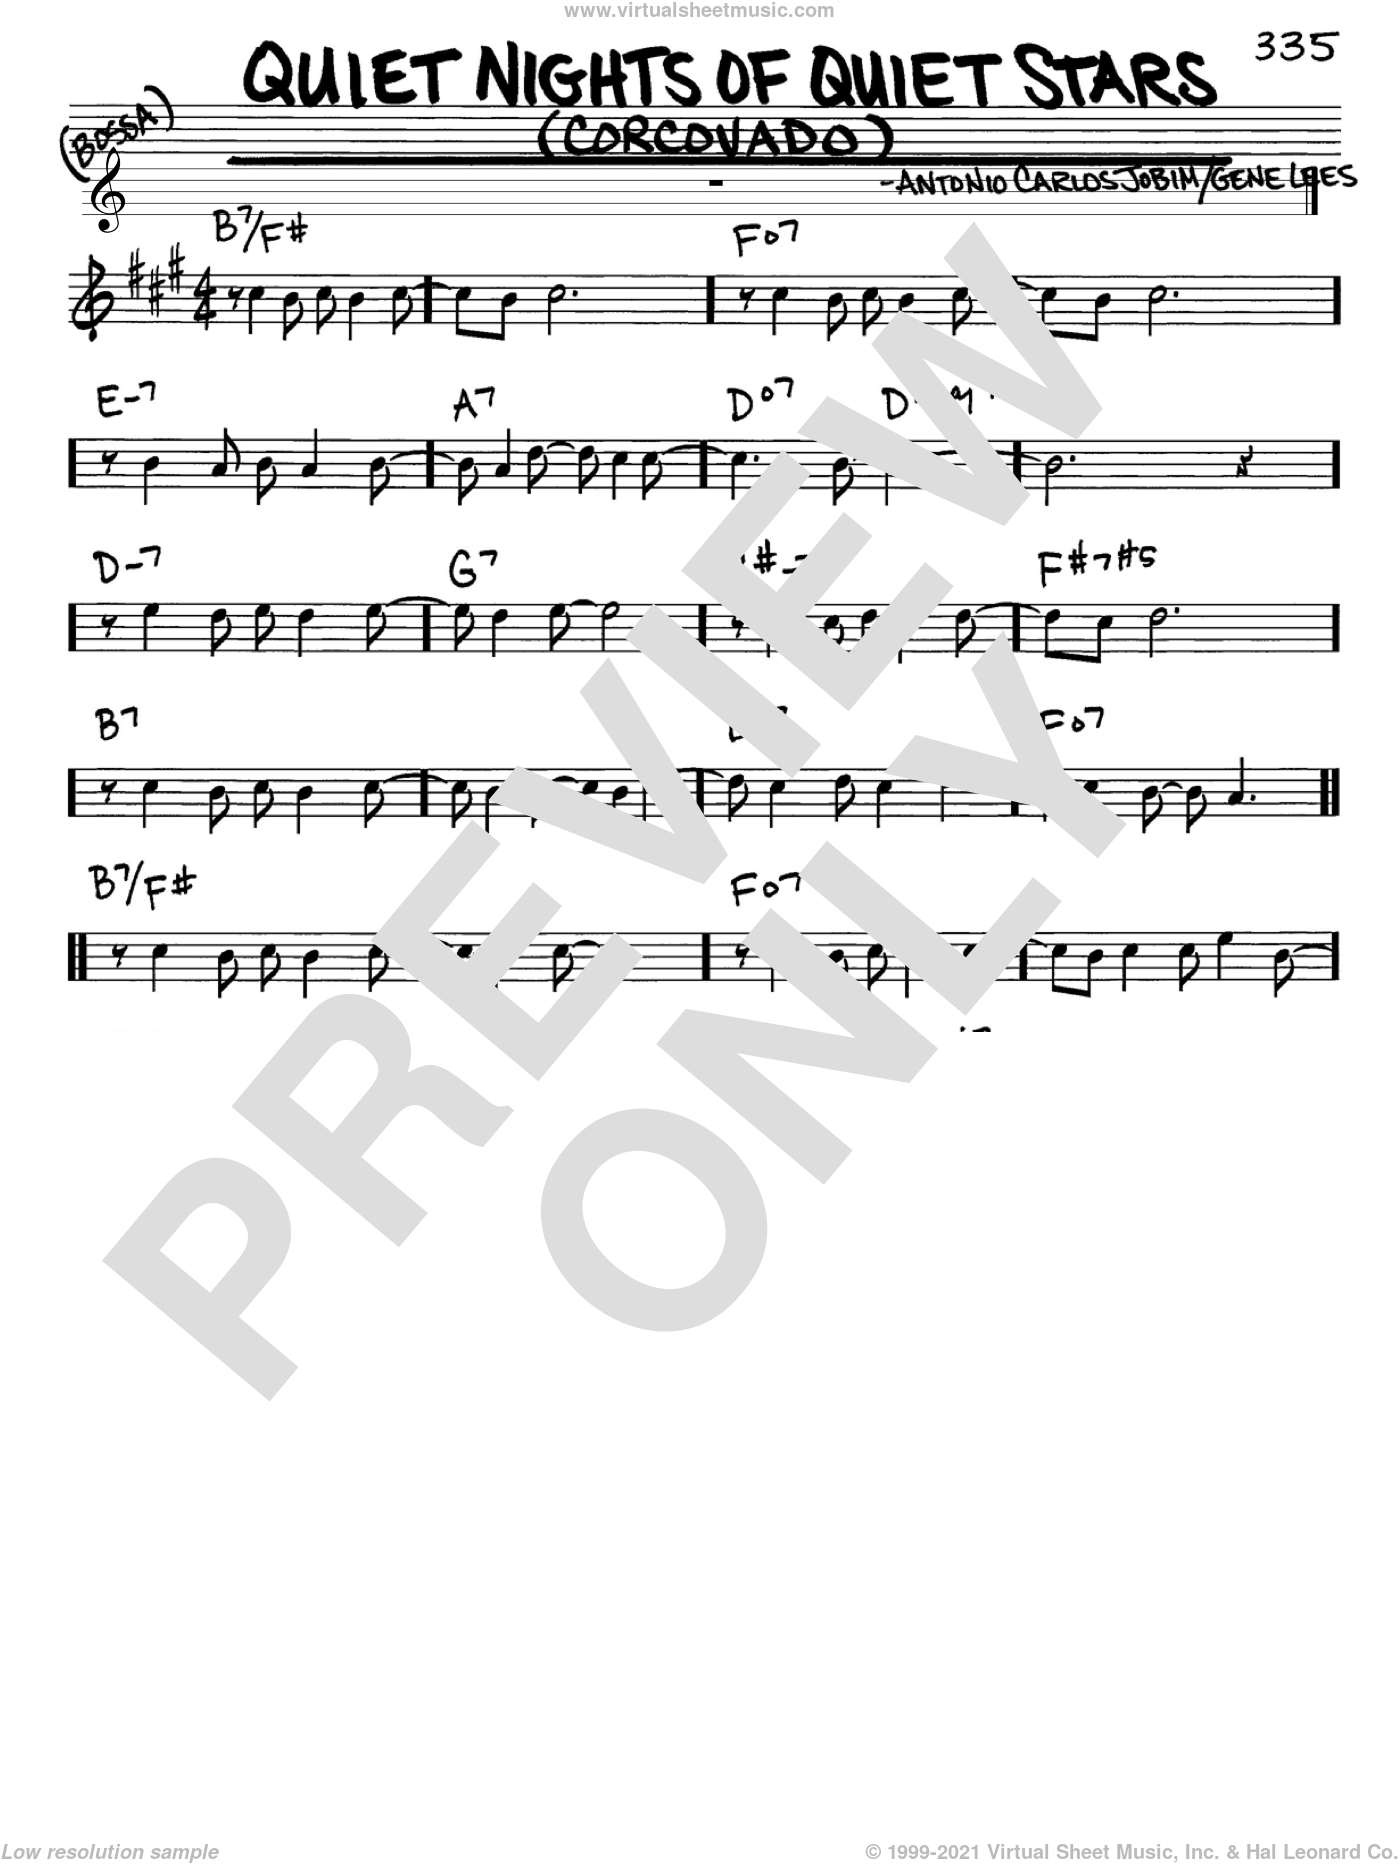 Quiet Nights Of Quiet Stars (Corcovado) sheet music for voice and other instruments (Eb) by Antonio Carlos Jobim and Andy Williams. Score Image Preview.